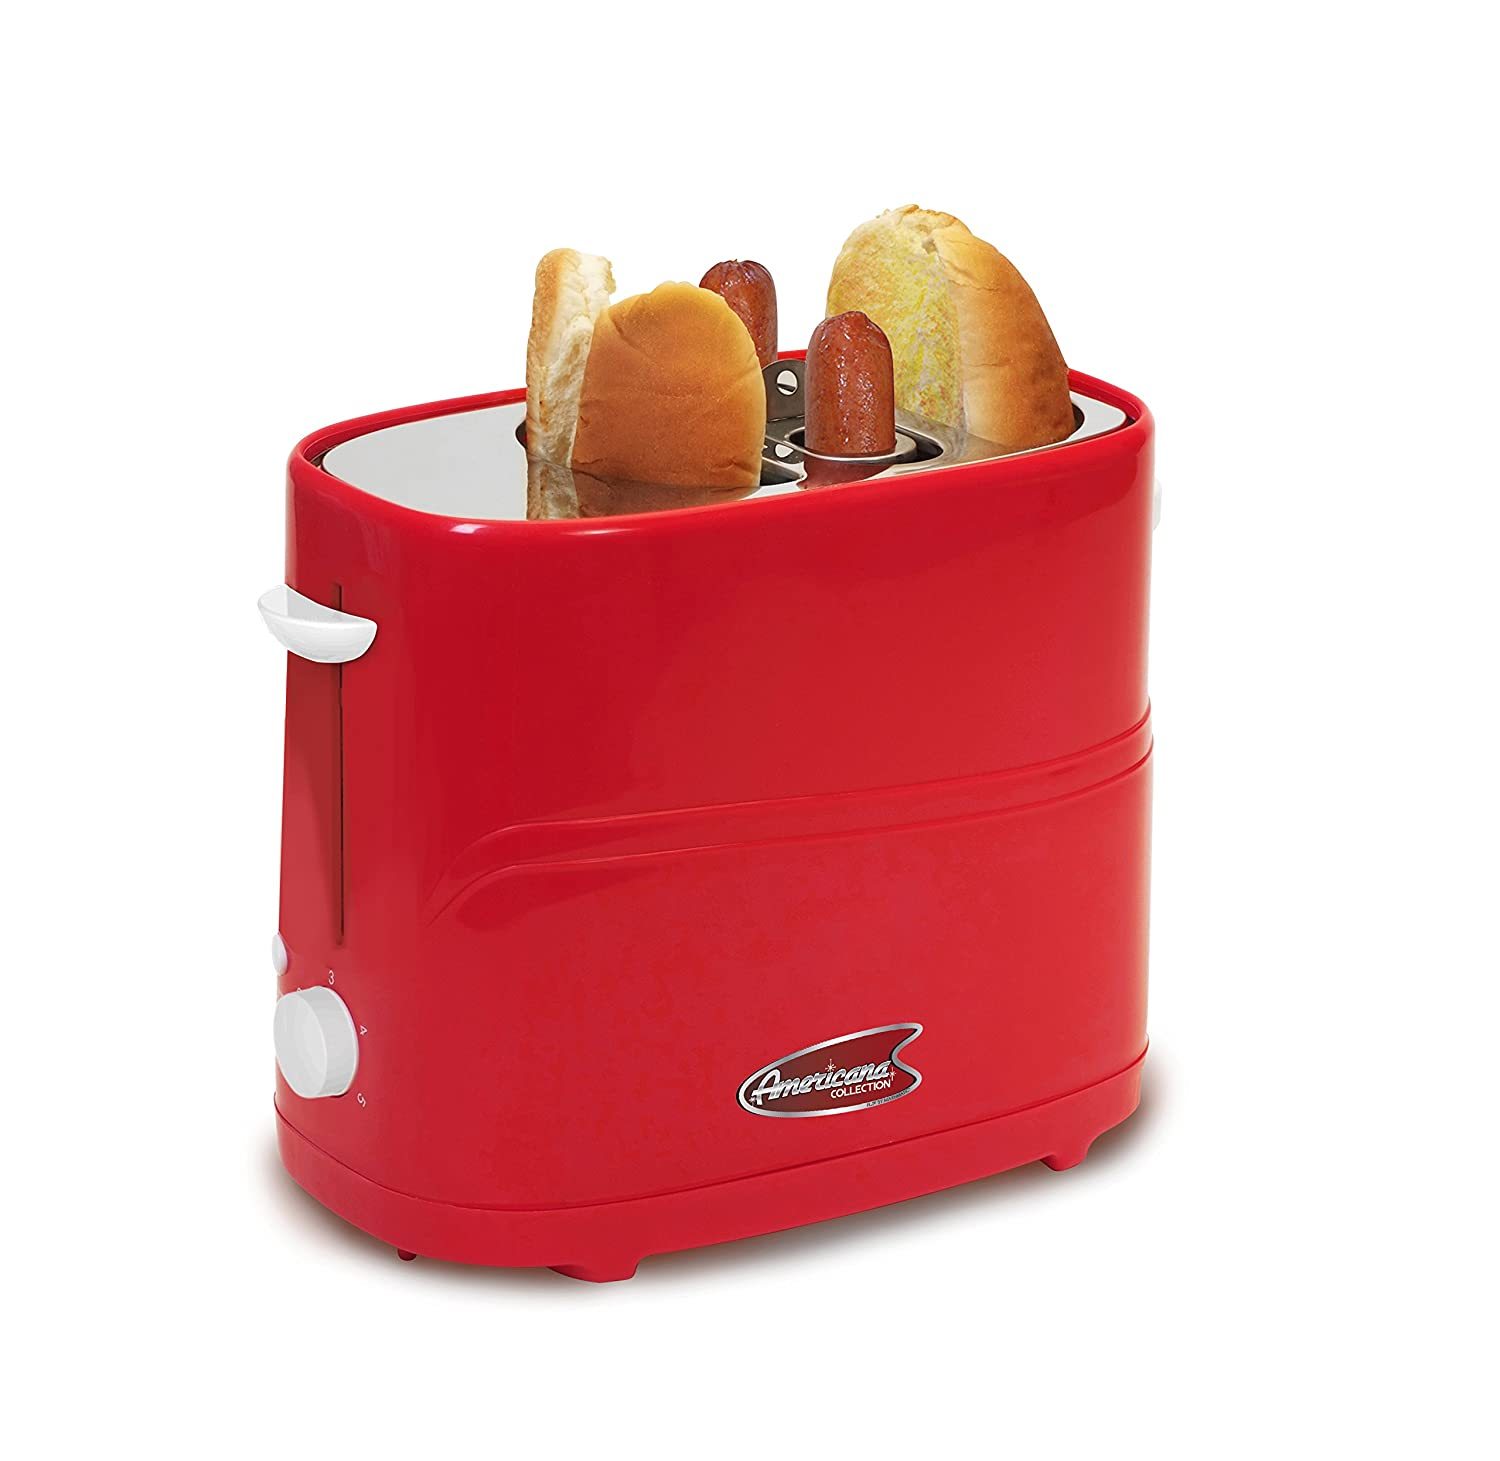 Americana By Elite ECT-542R Retro Pop-Up Hot Dog Toaster Cooker Machine Red